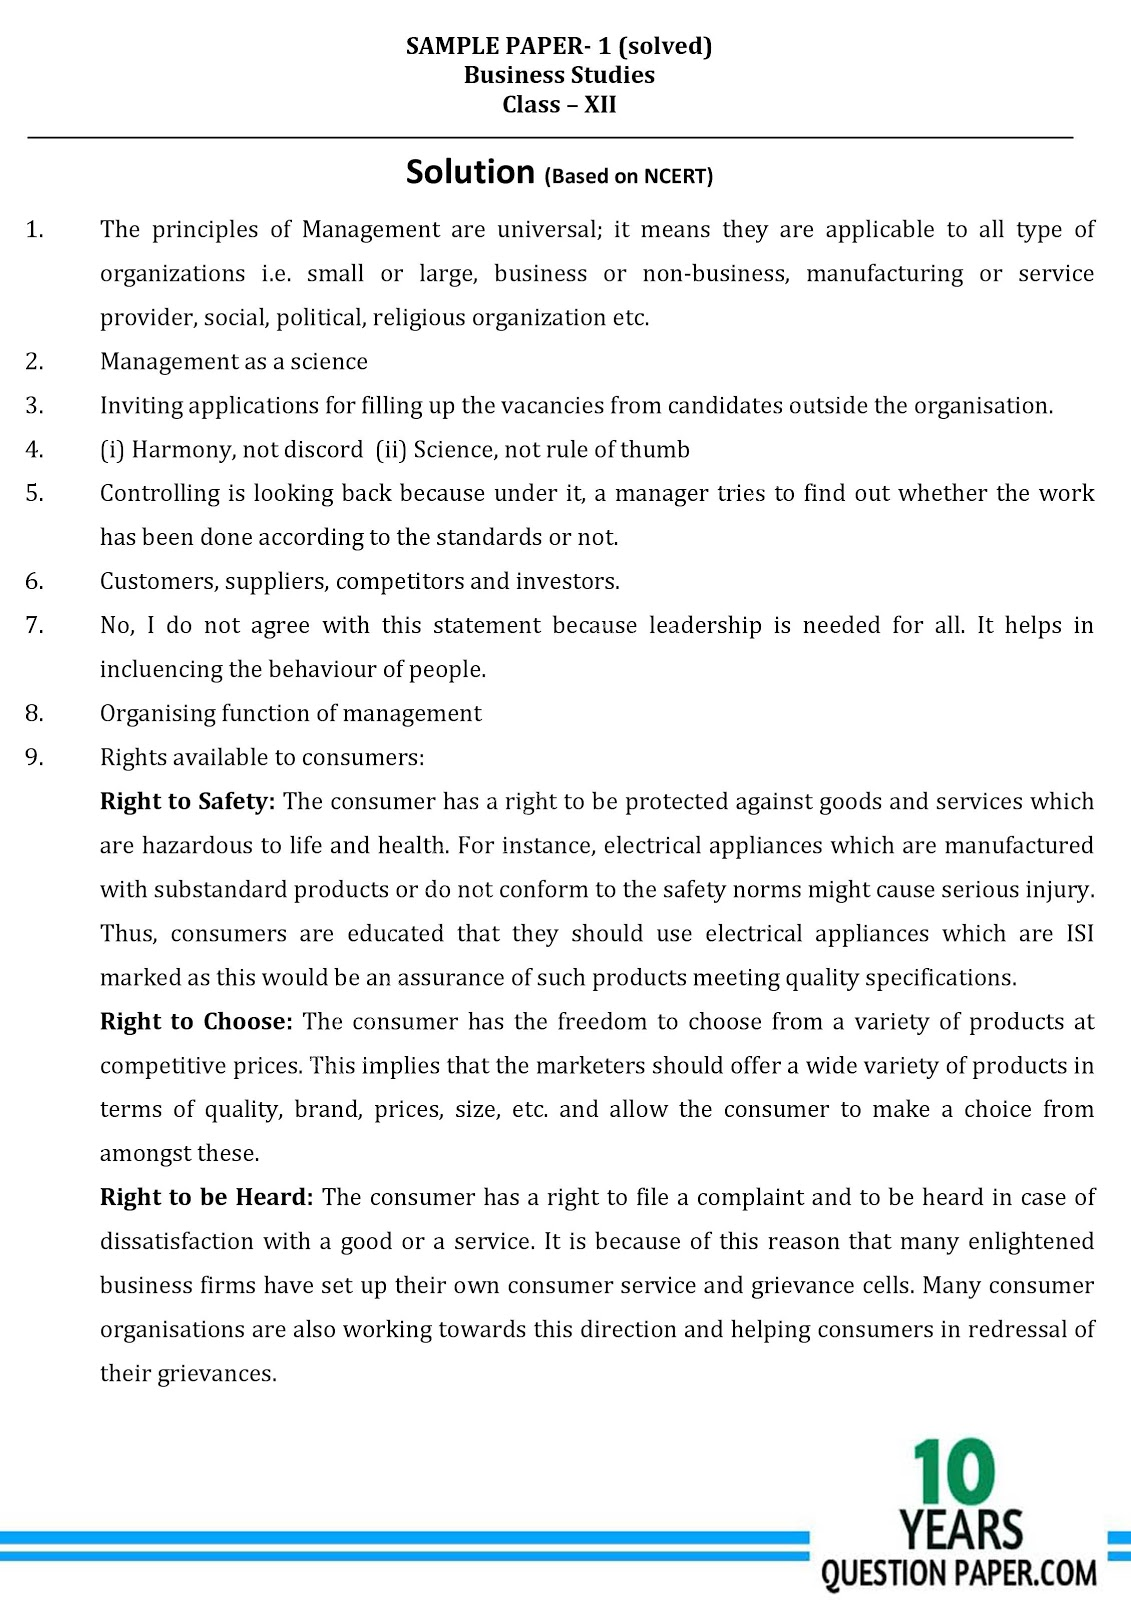 cbse business studies sample paper class years  cbse class 12th 2018 business solved sample paper